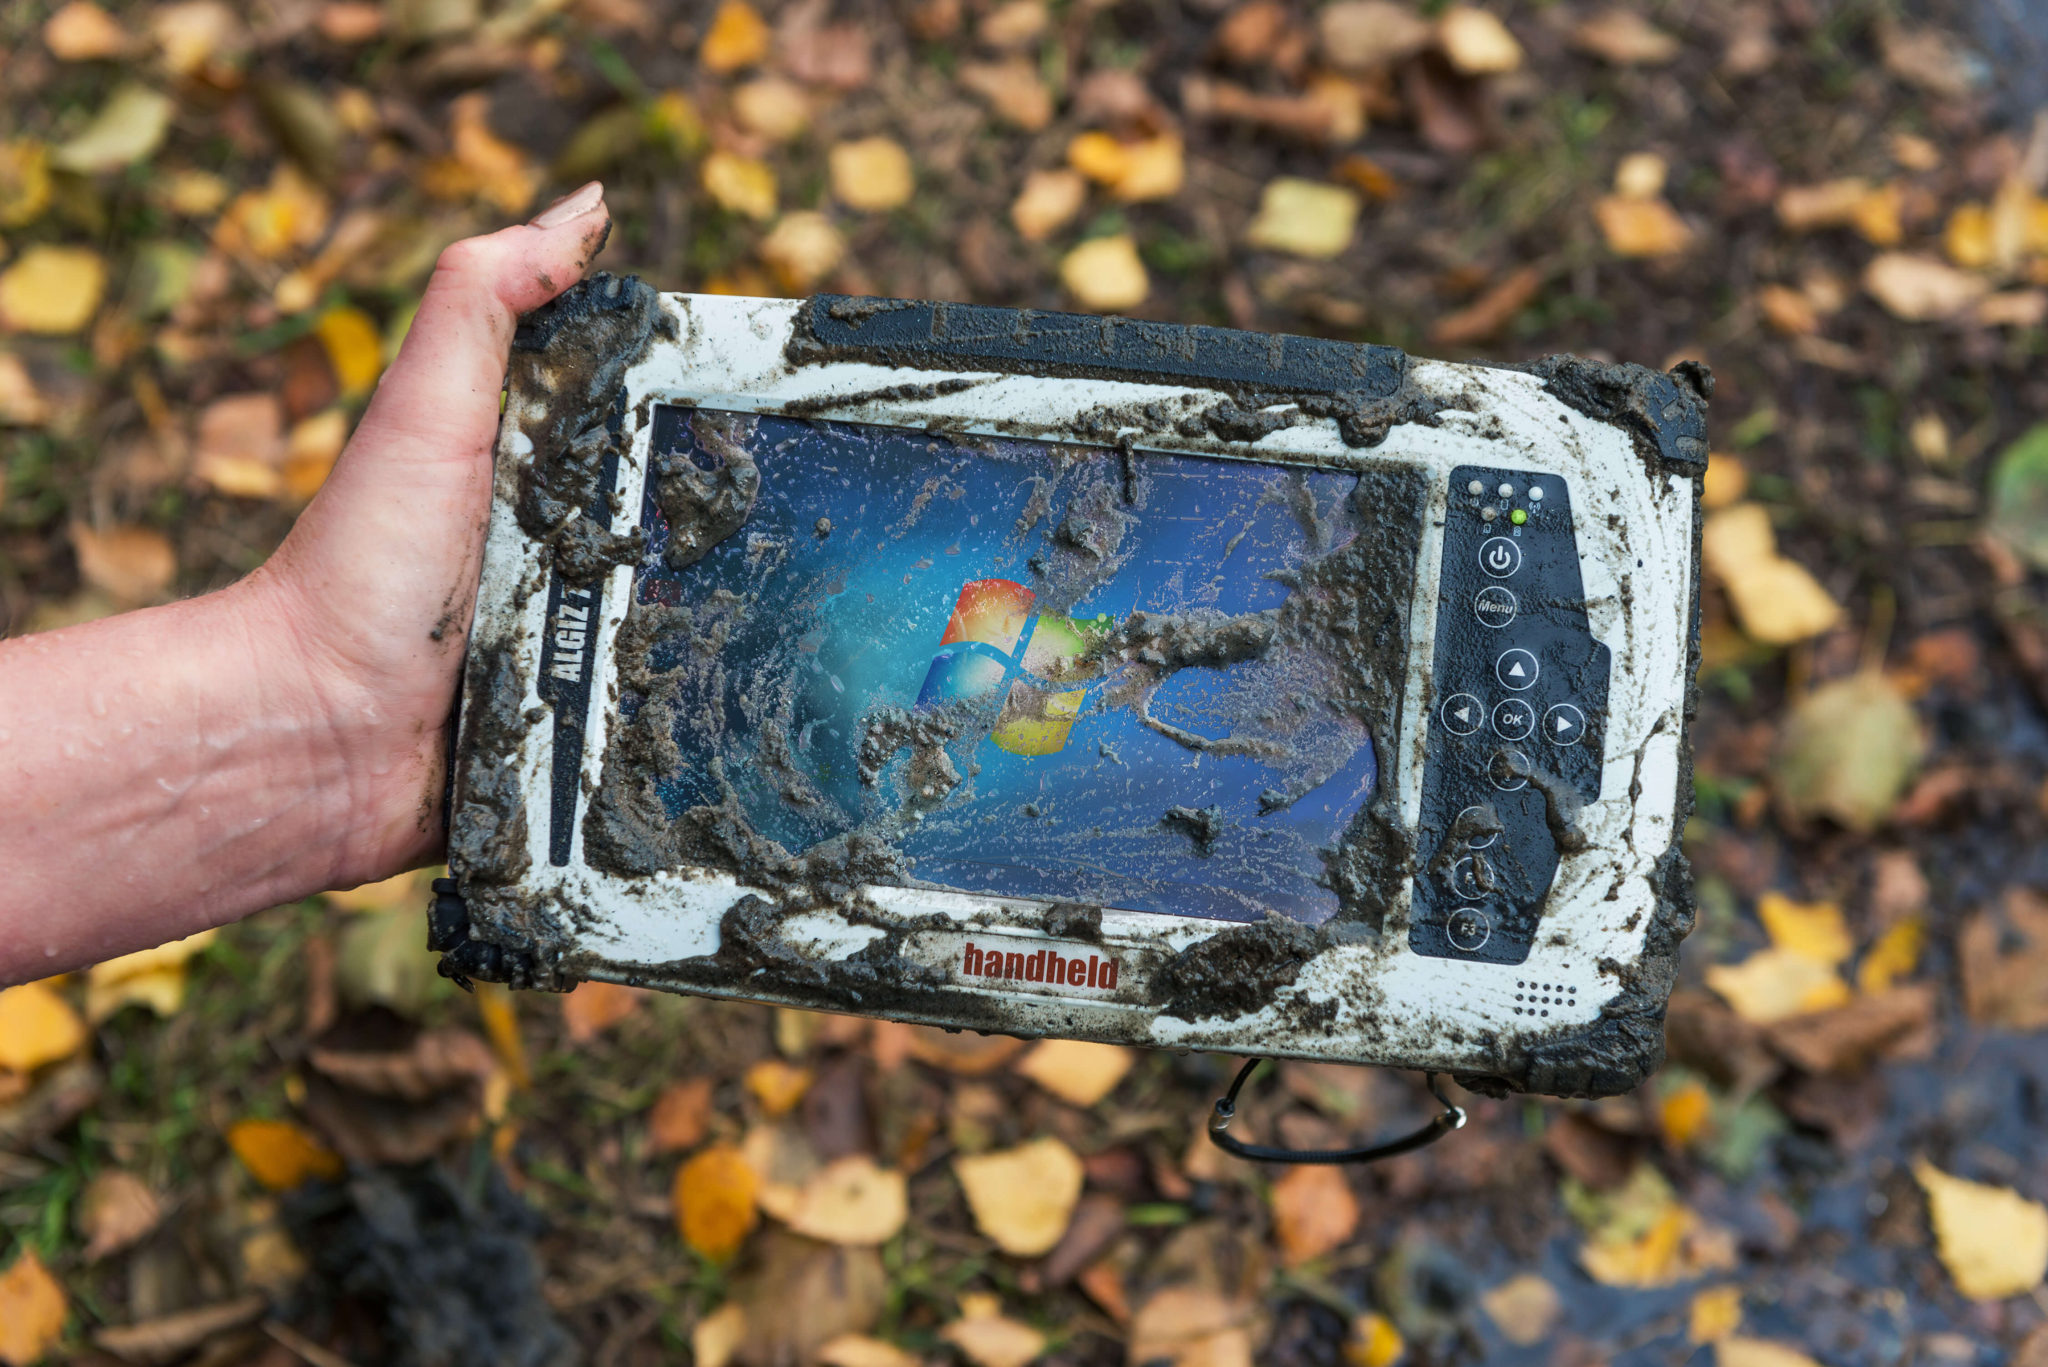 algiz-7-rugged-tablet-handheld-outdoors-in-mud-ip65